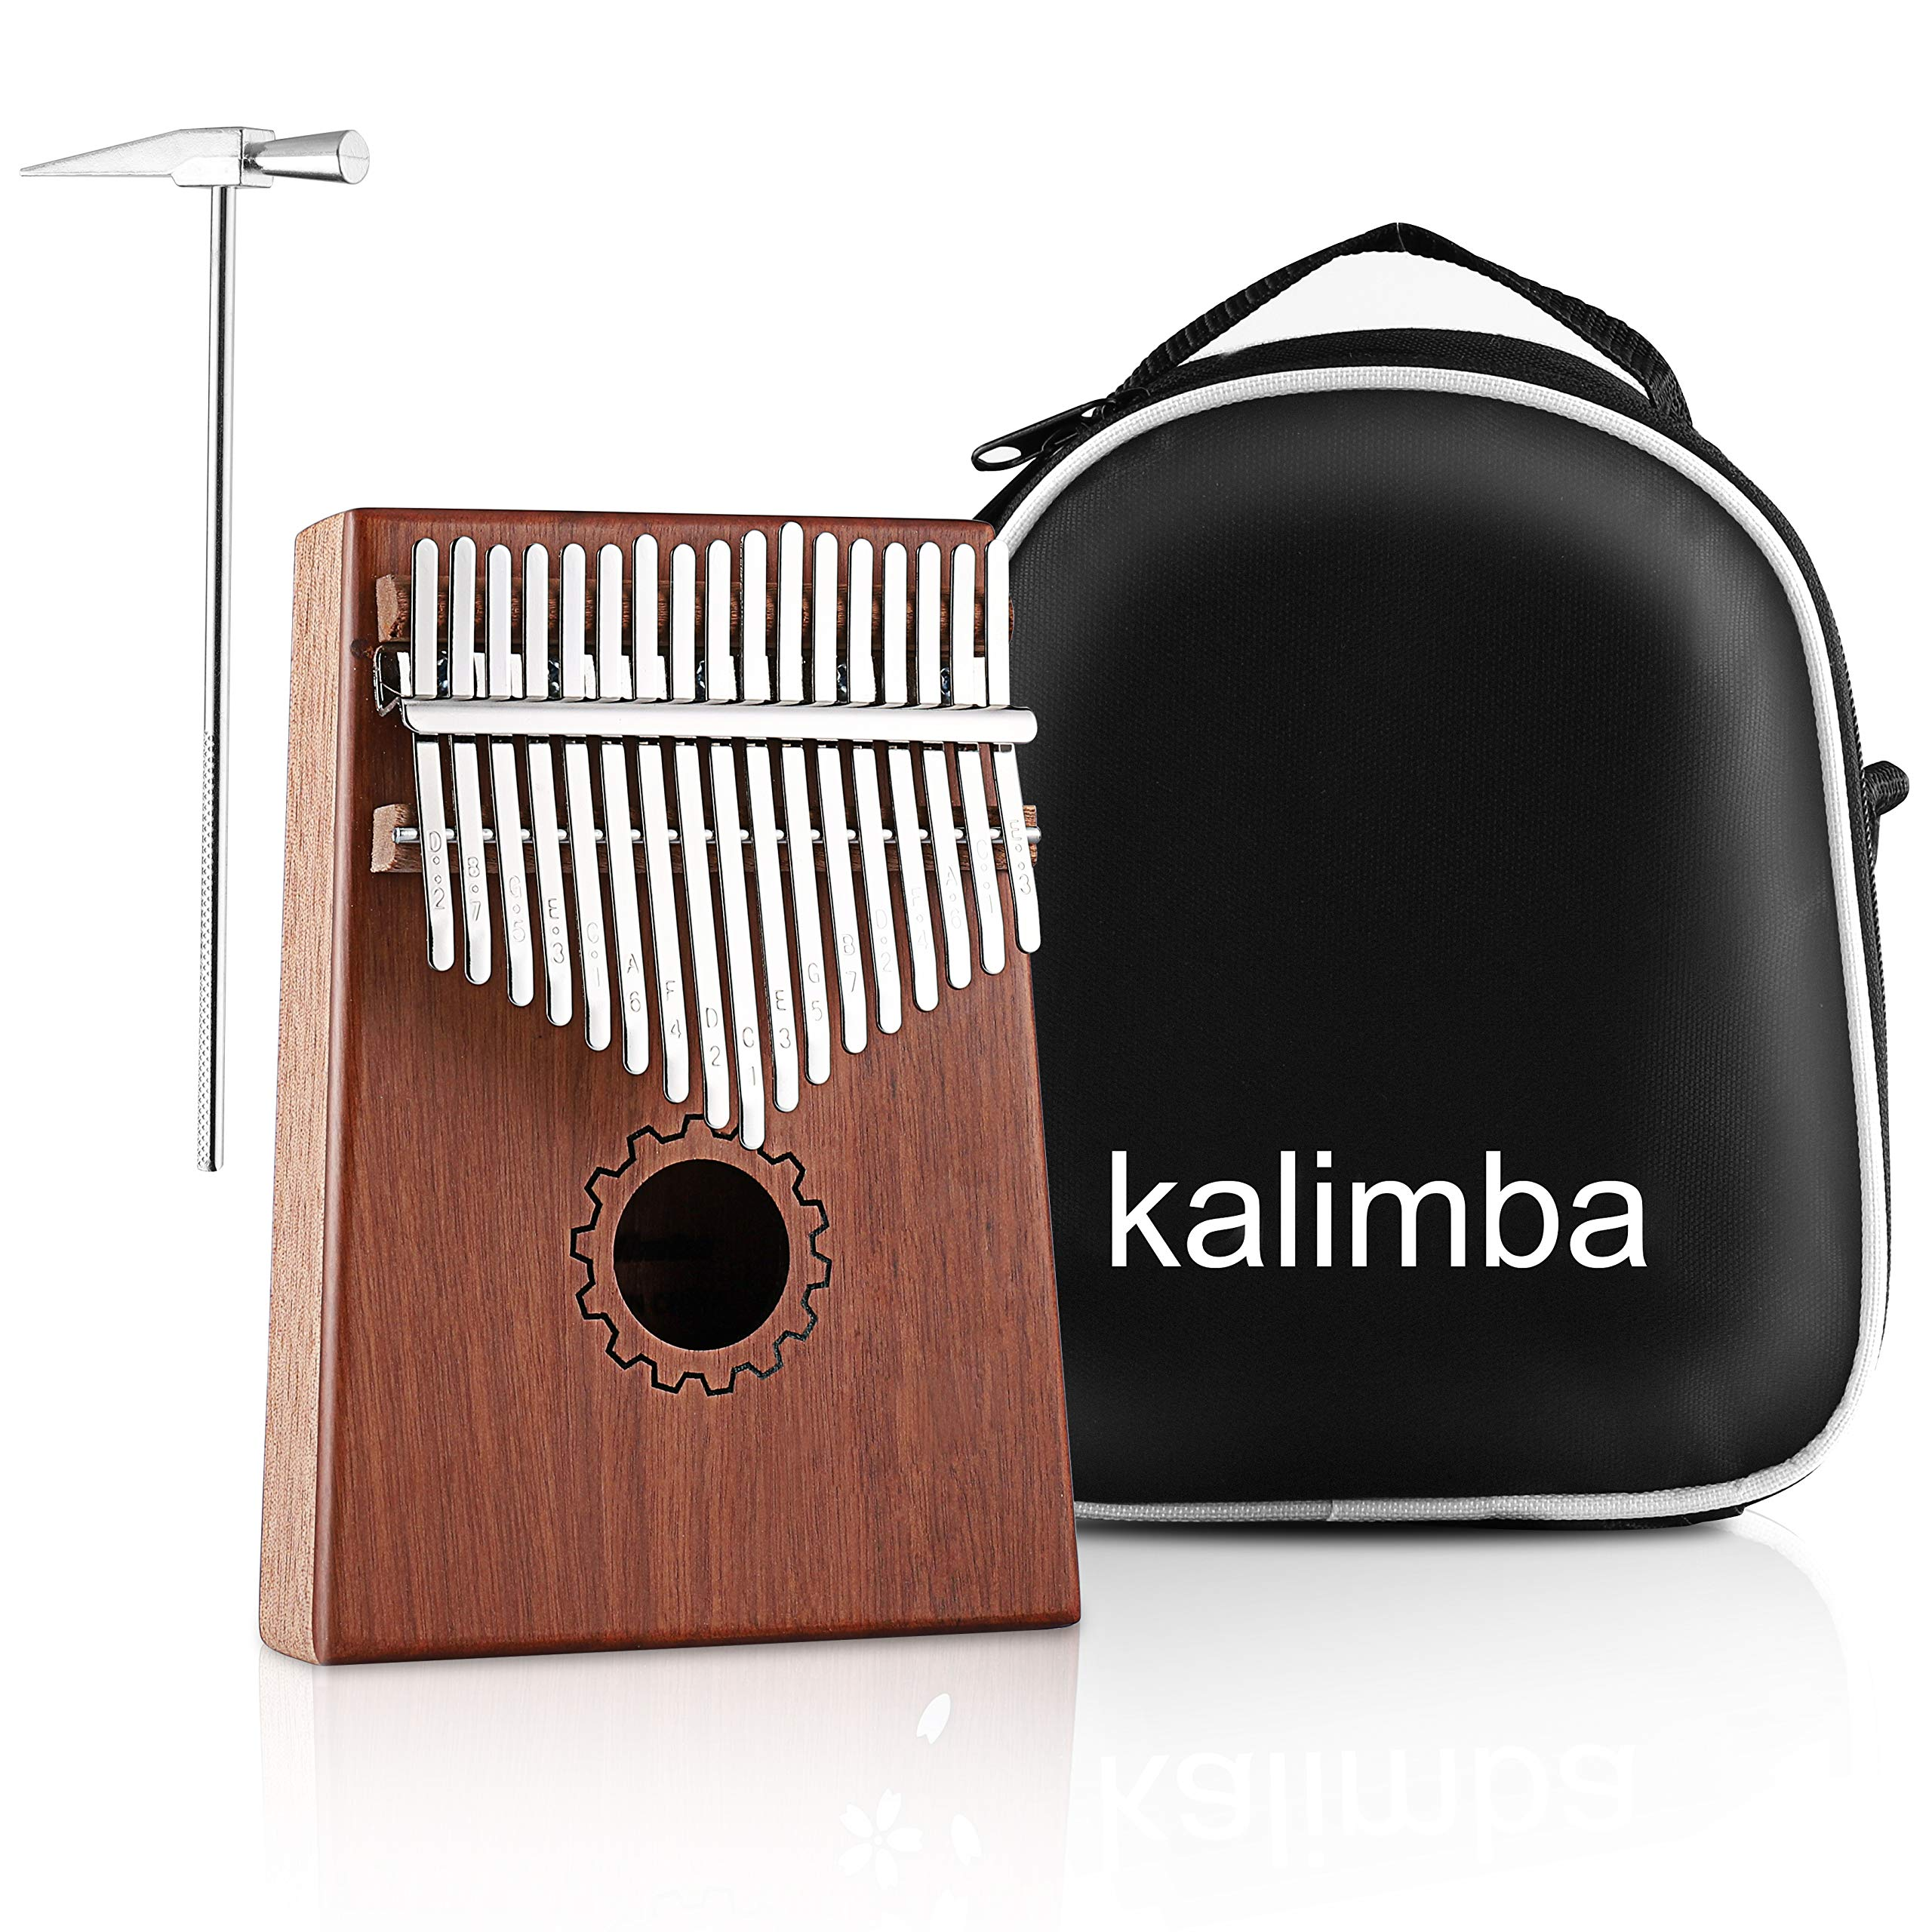 MINGPINHUIUS Kalimba 17 Key Thumb Piano, Mbira Thumb Drive with Bag and Instruction Songbook Portable Musical Instrument for Kids, Friends,Beginners,Music Lovers (Gear) by MINGPINHUIUS